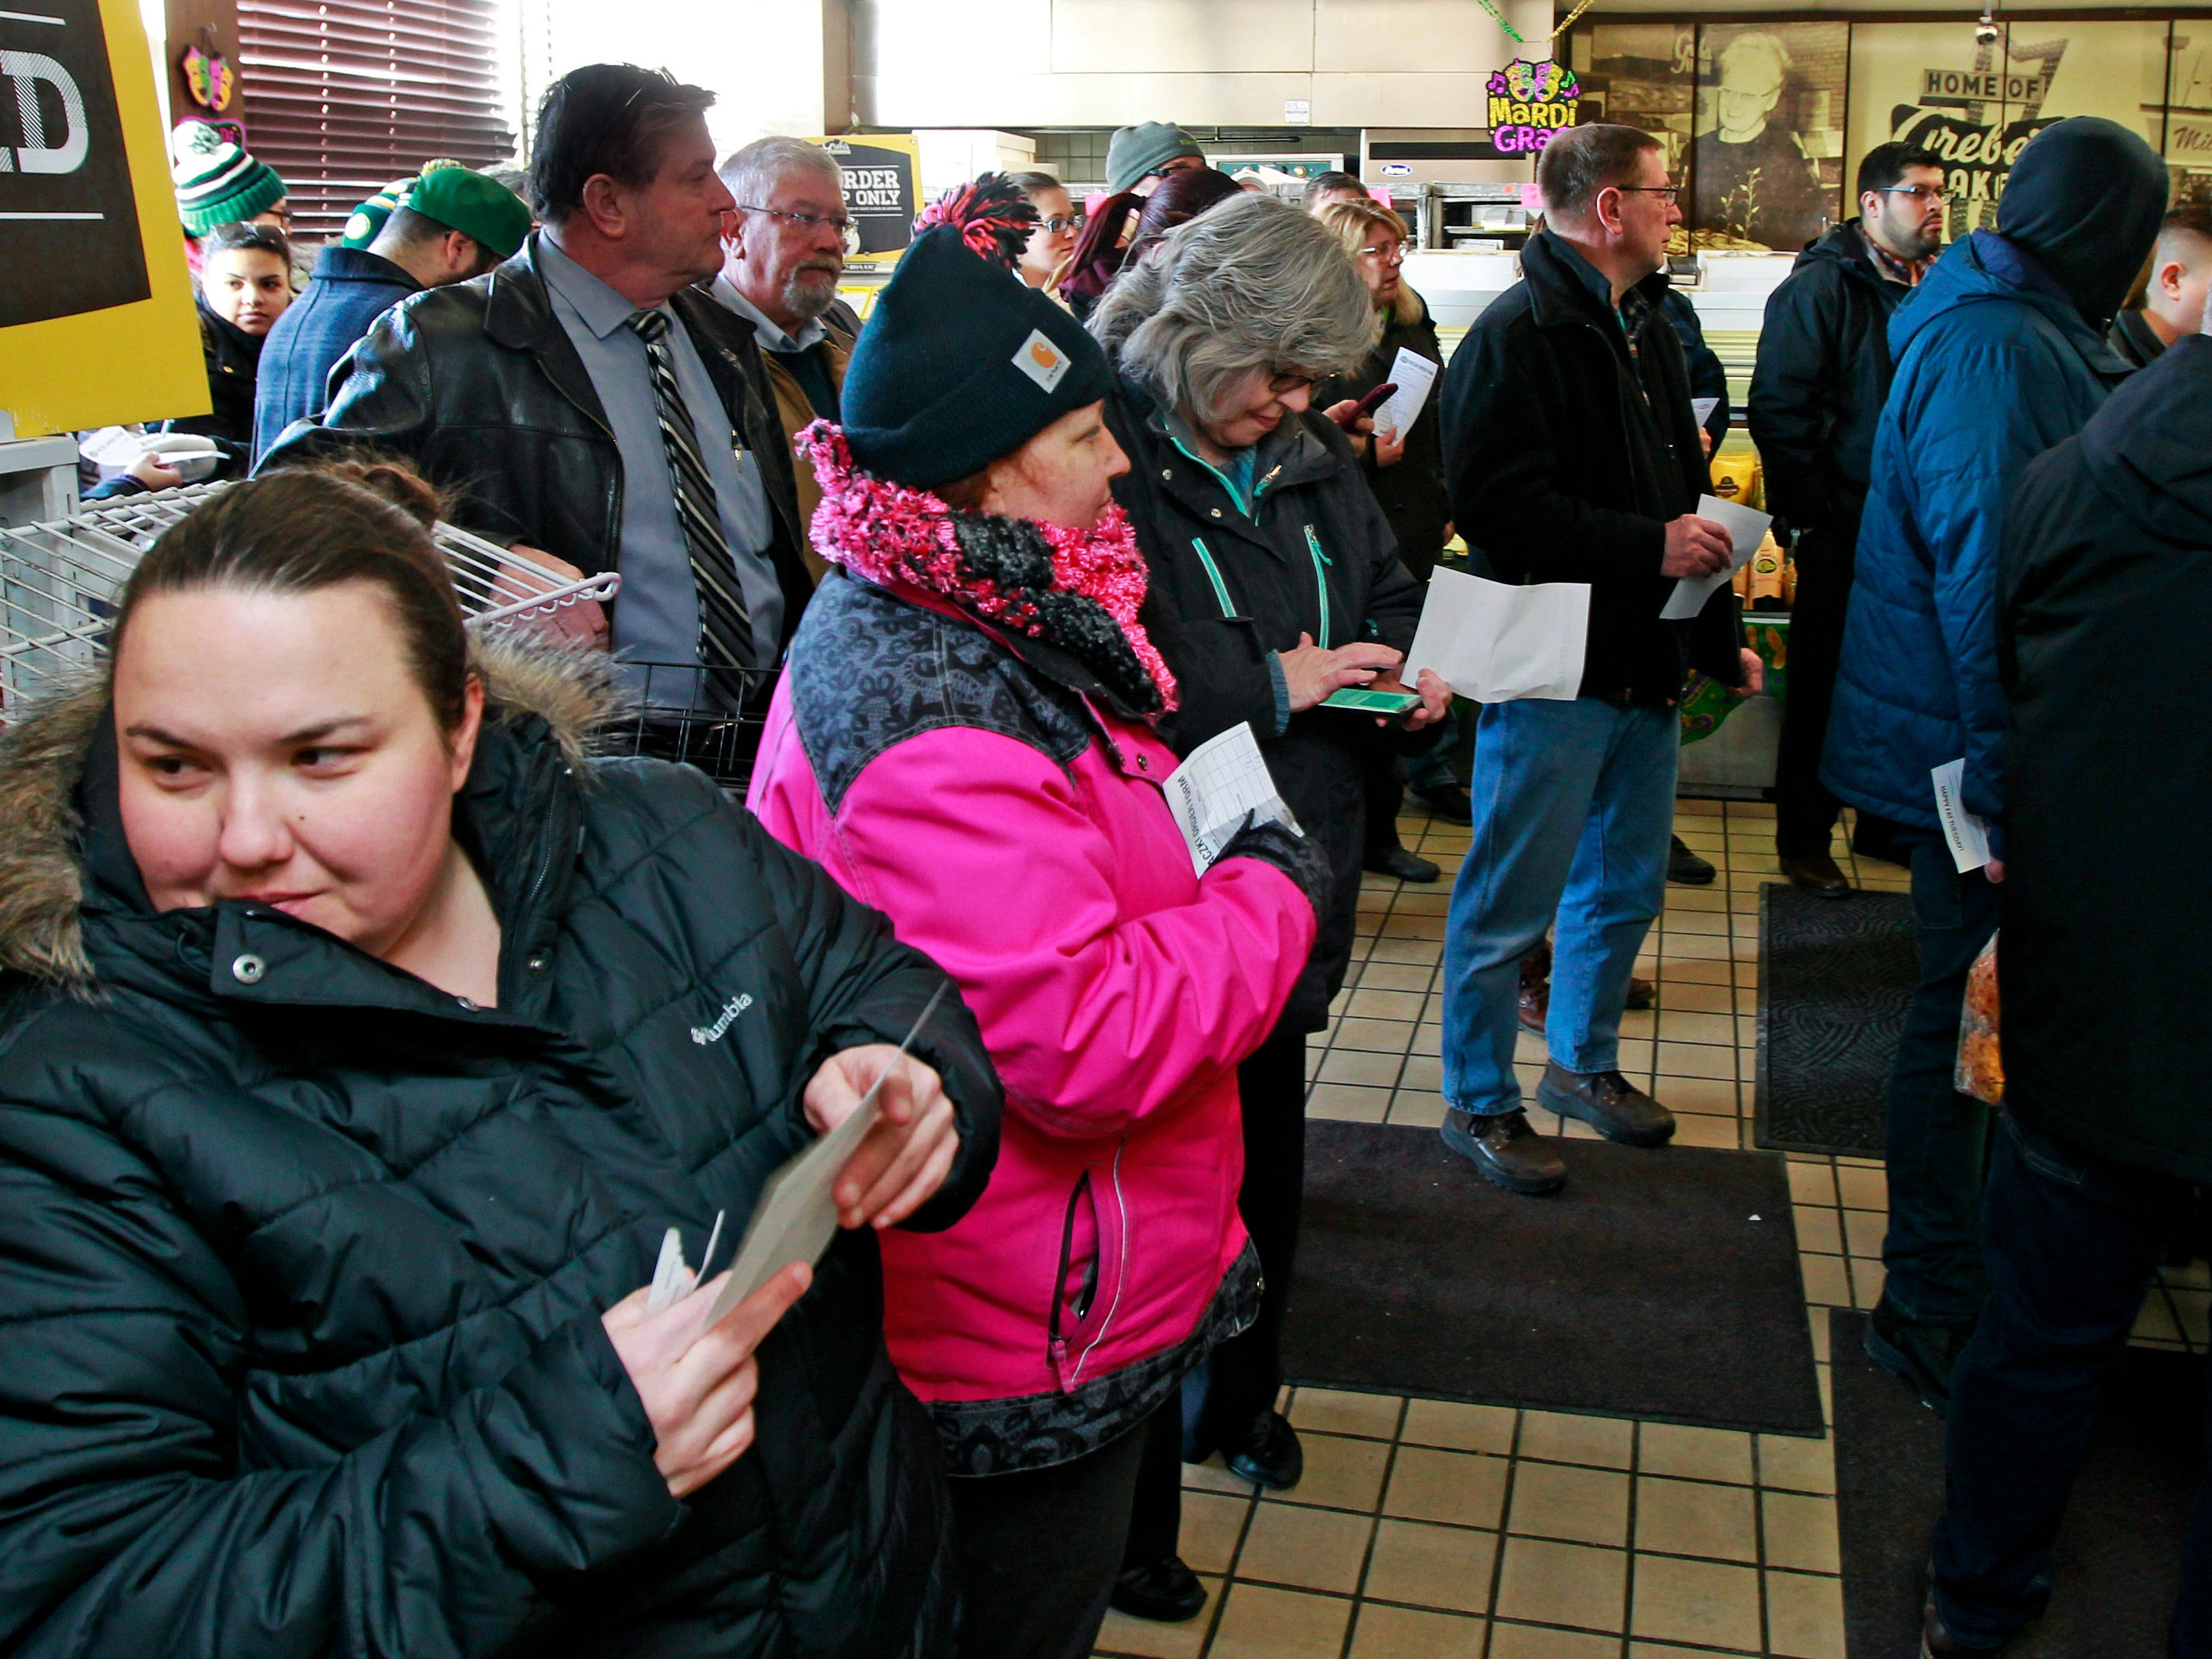 Early morning customers wait patiently at Grebe's Bakery in West Allis for their Fat Tuesday tradition, paczki.